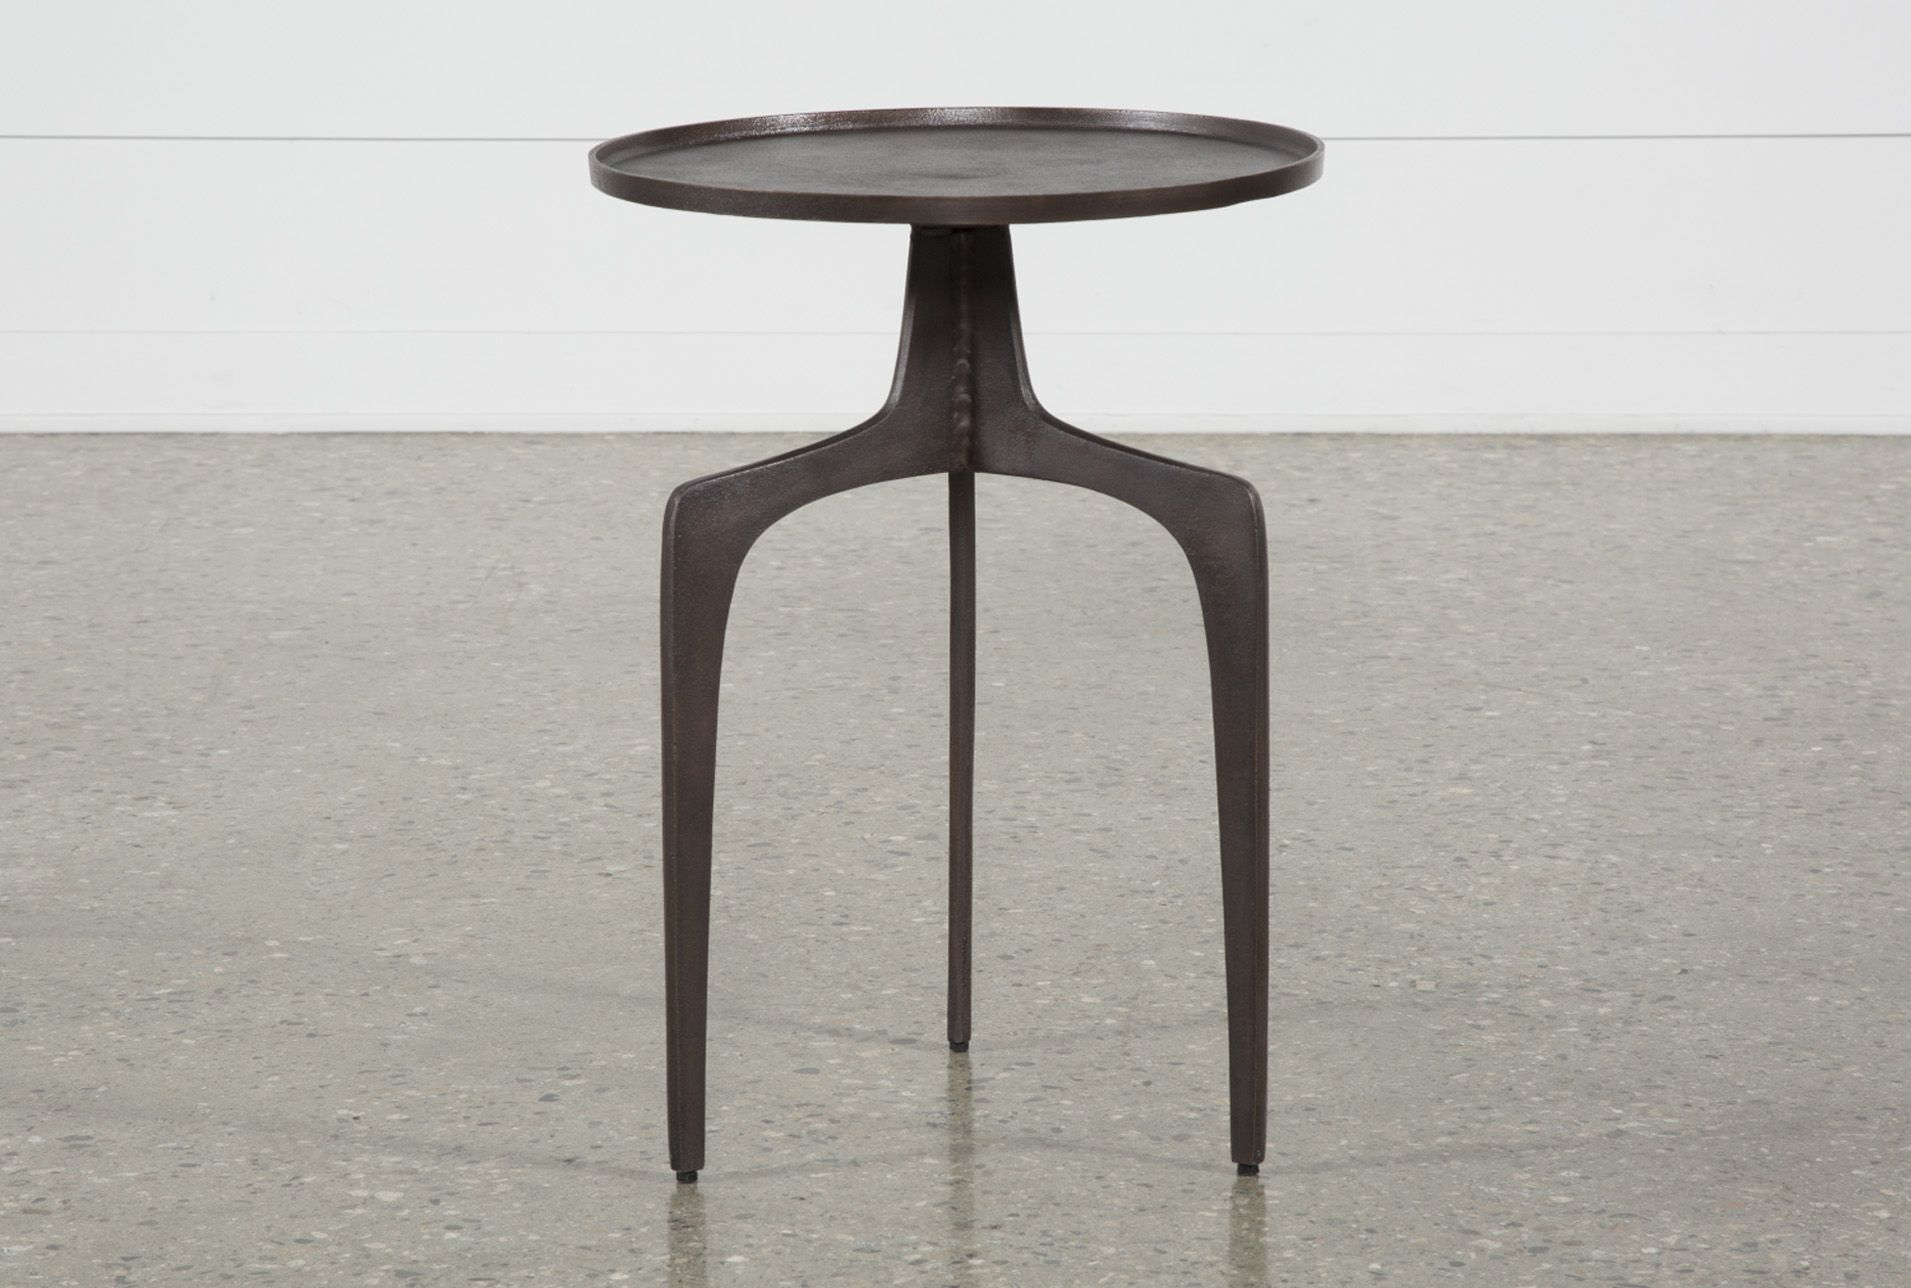 Gibson Black Accent Table Black Accent Table Accent Table